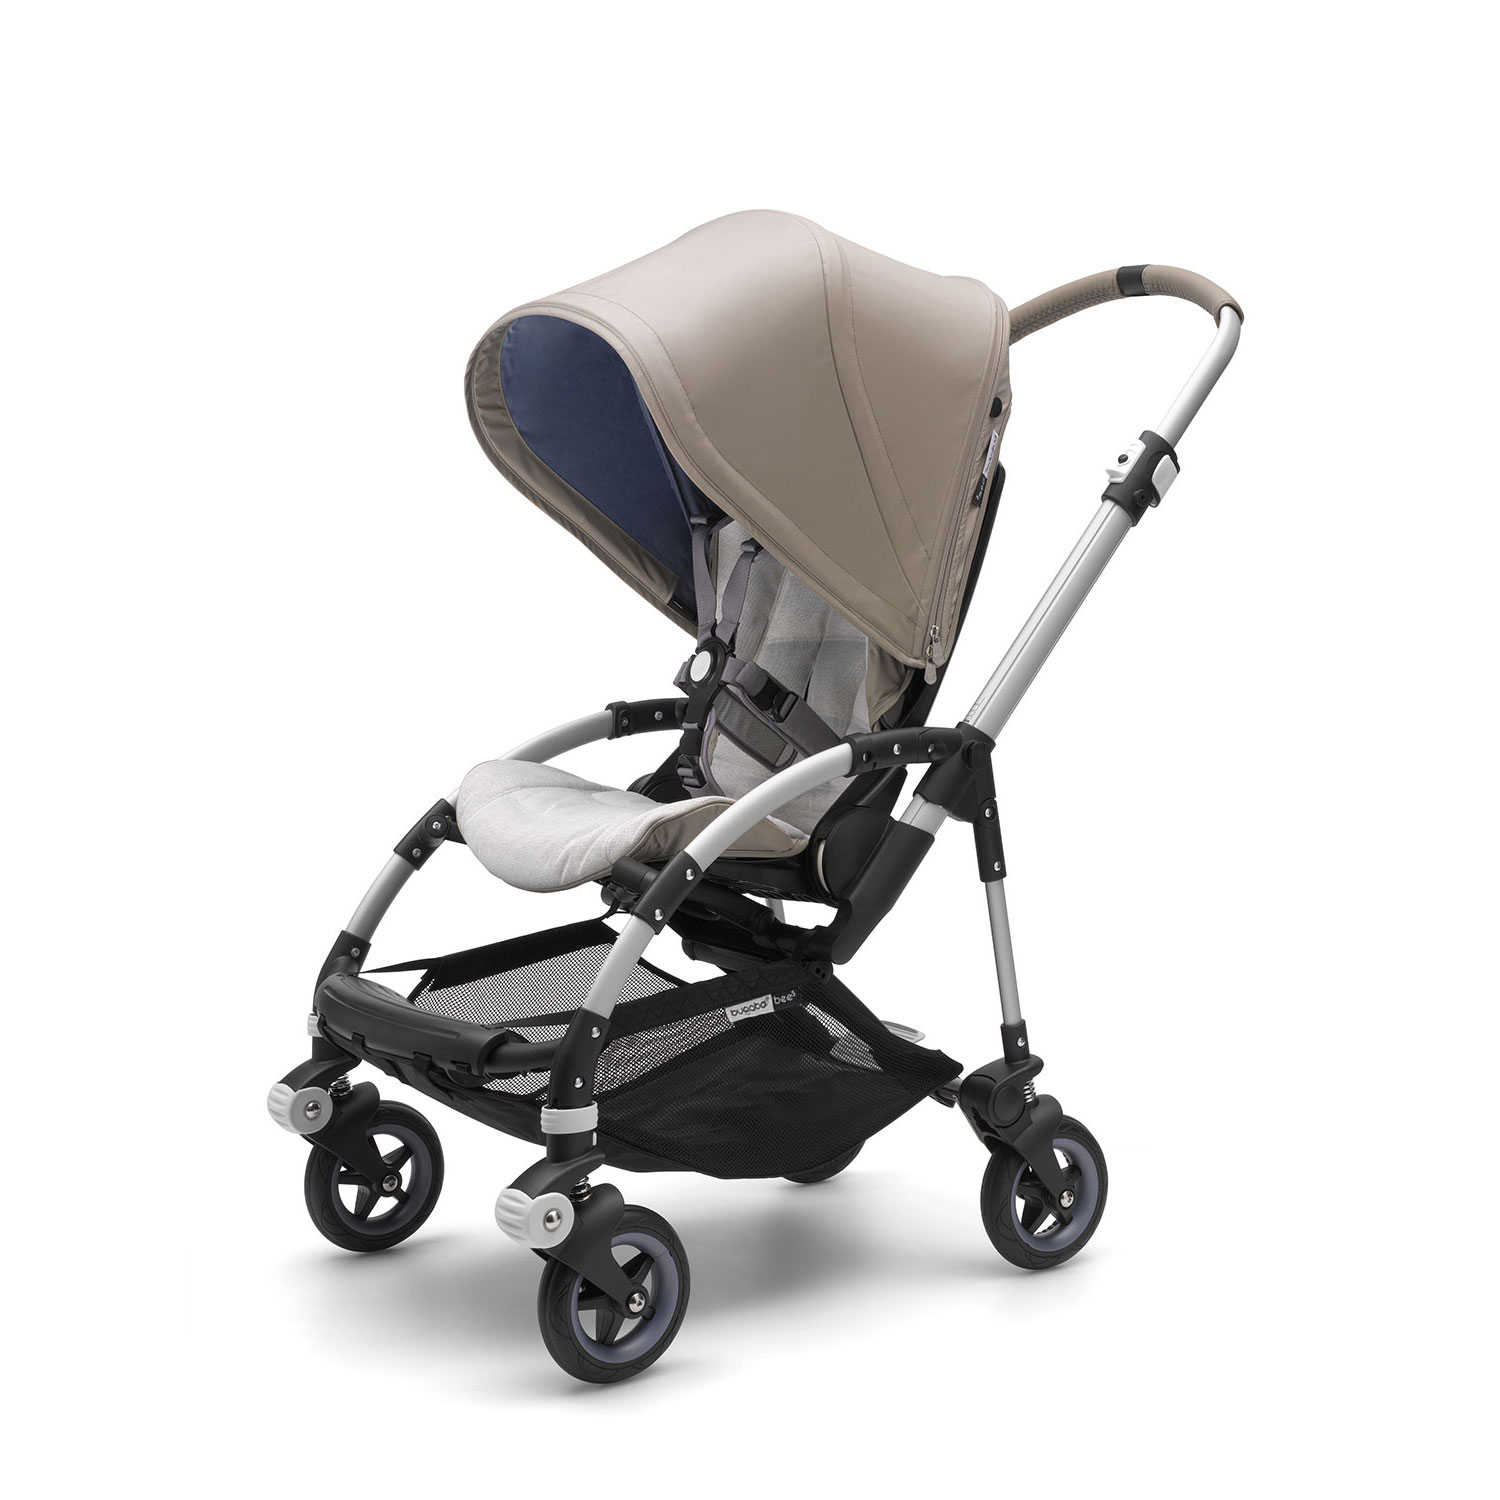 Коляска Bugaboo Bee5 complete Tone прогулочнаяКоляски прогулочные<br><br>